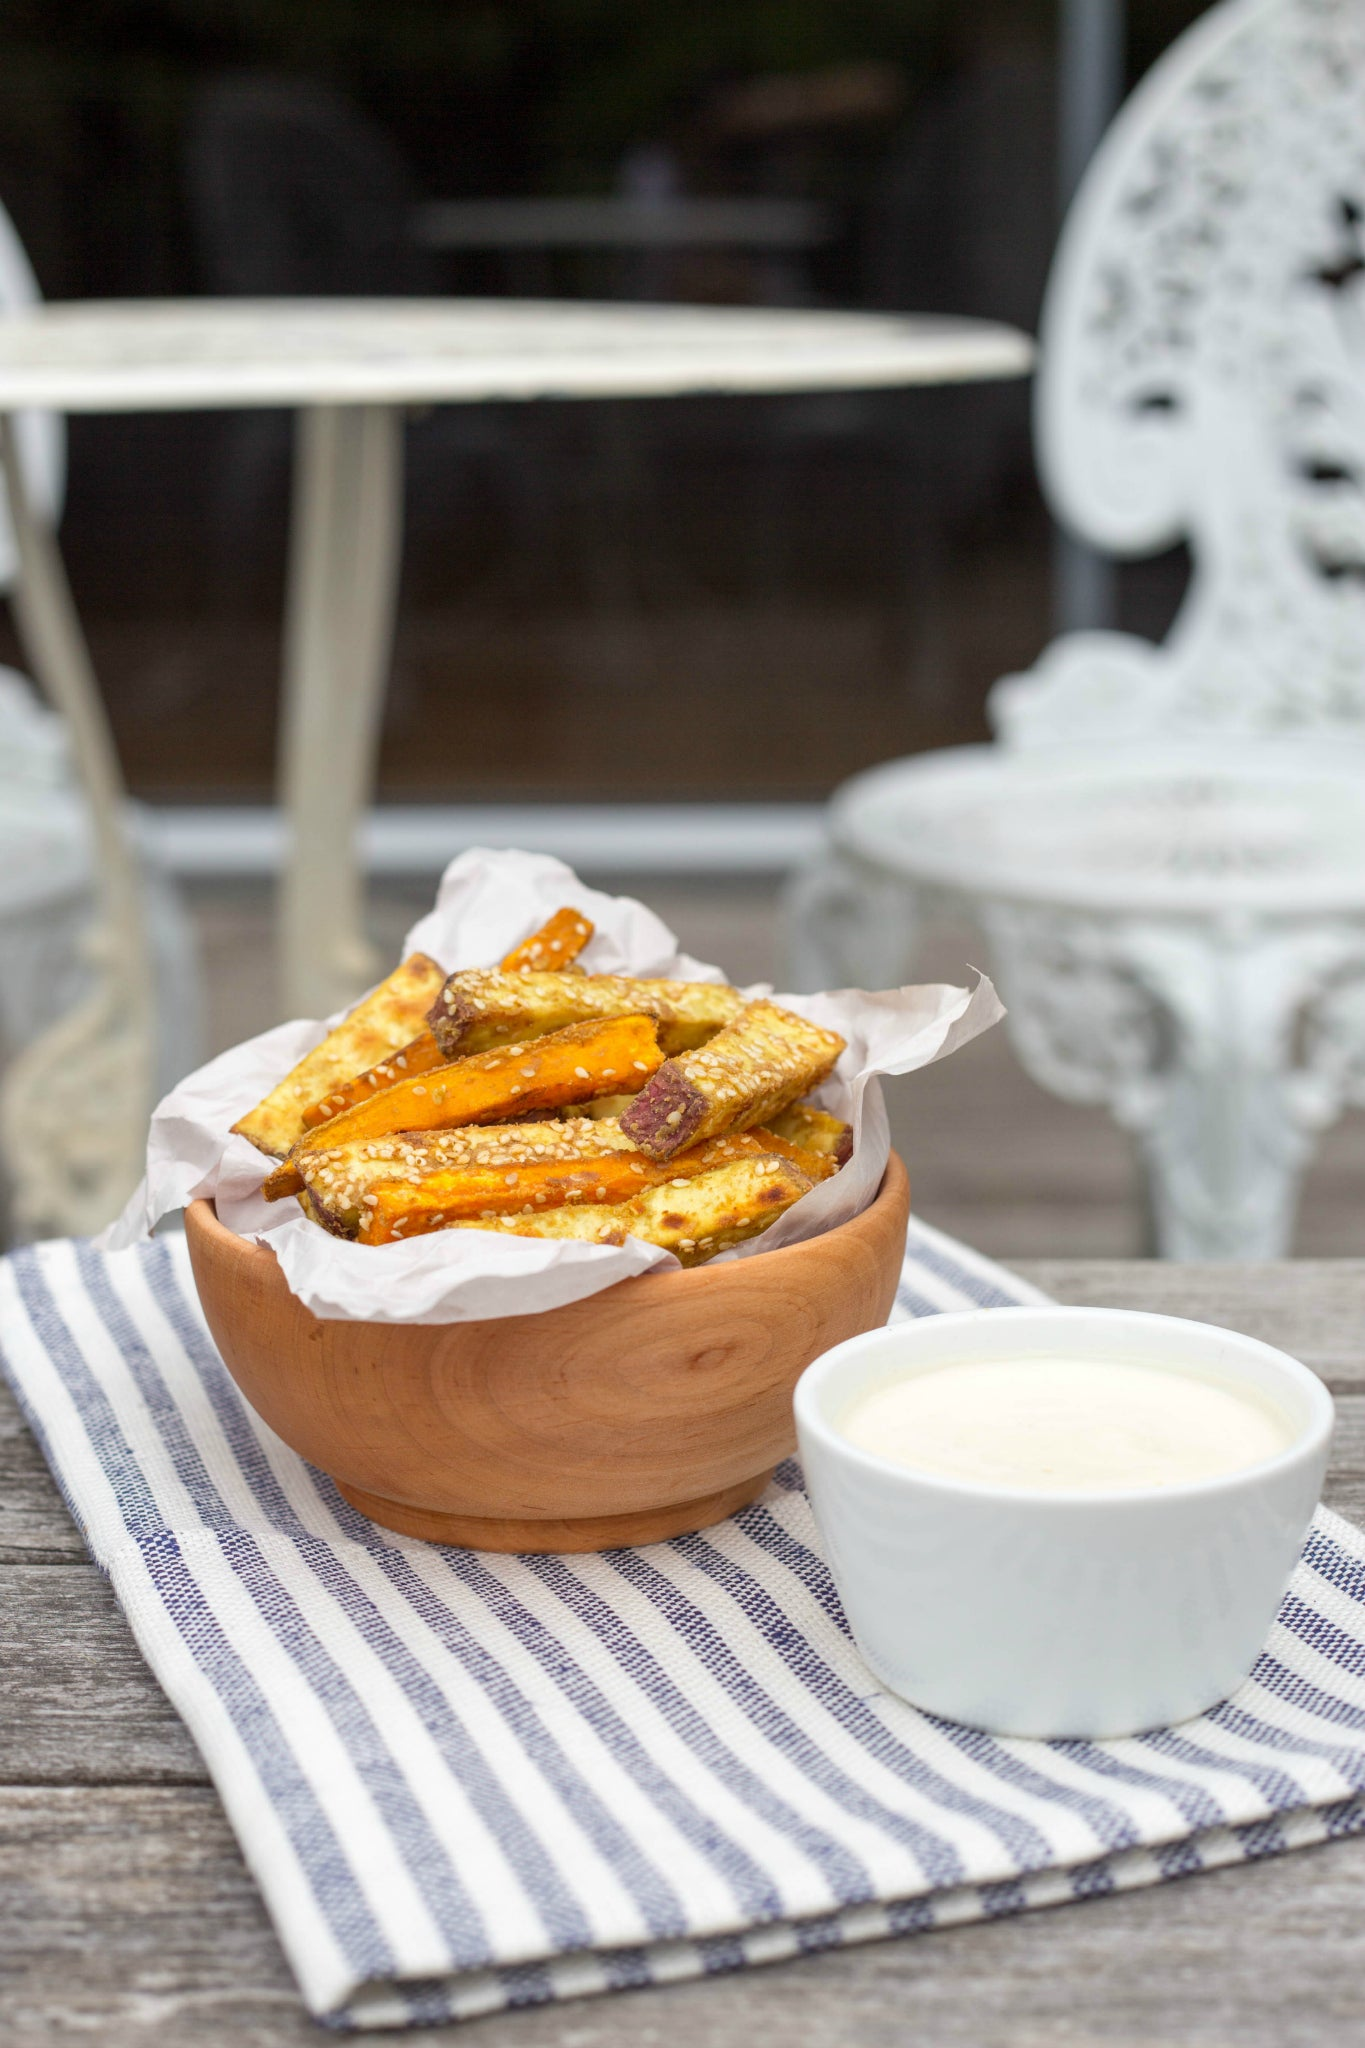 CUMIN DUSTED KUMARA FRIES #vegan #vegetarian #dairyfree #glutenfree #sugarfree #eggfree #healthy #recipe #begoodorganics